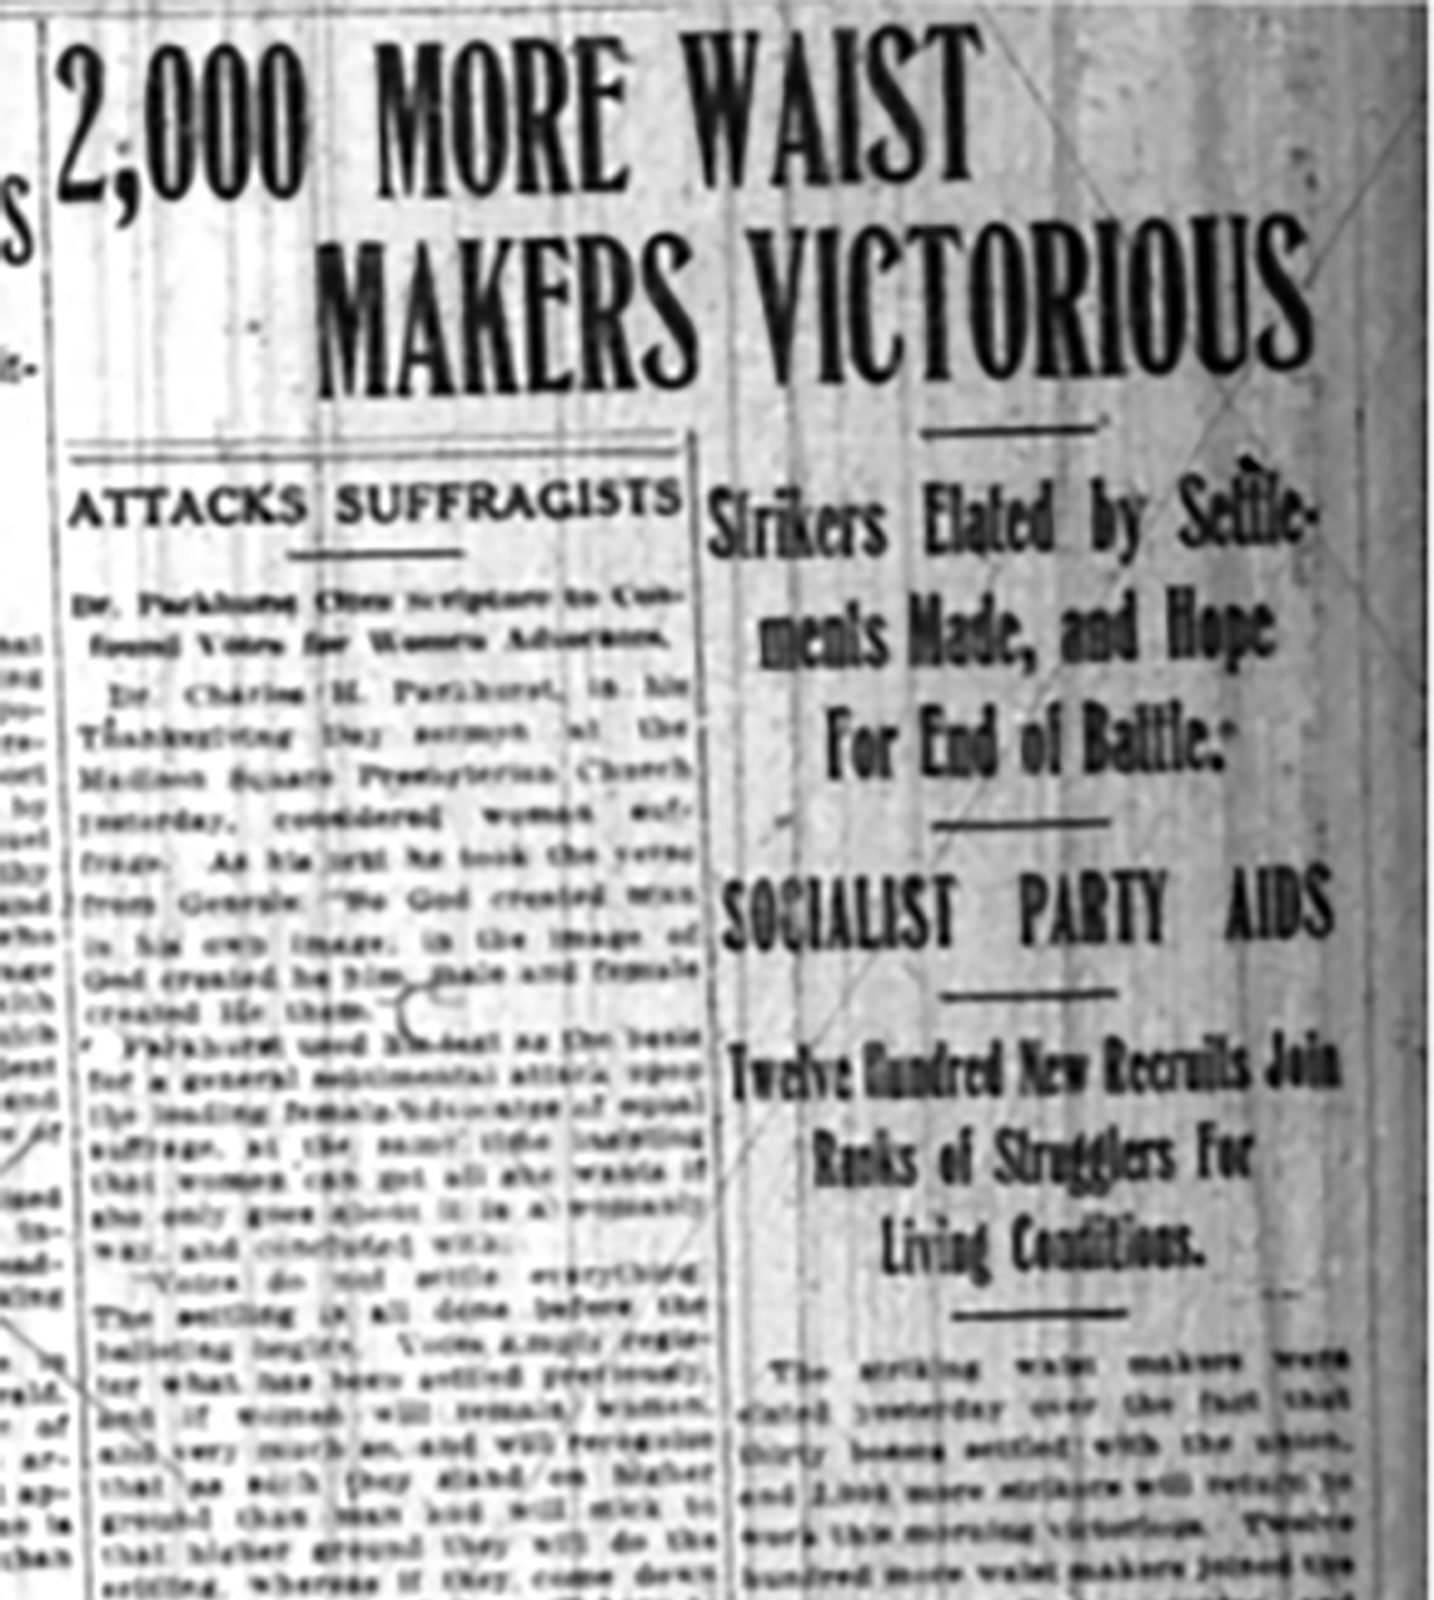 Newspaper article titled 2,000 More Waist Makers Victorious.